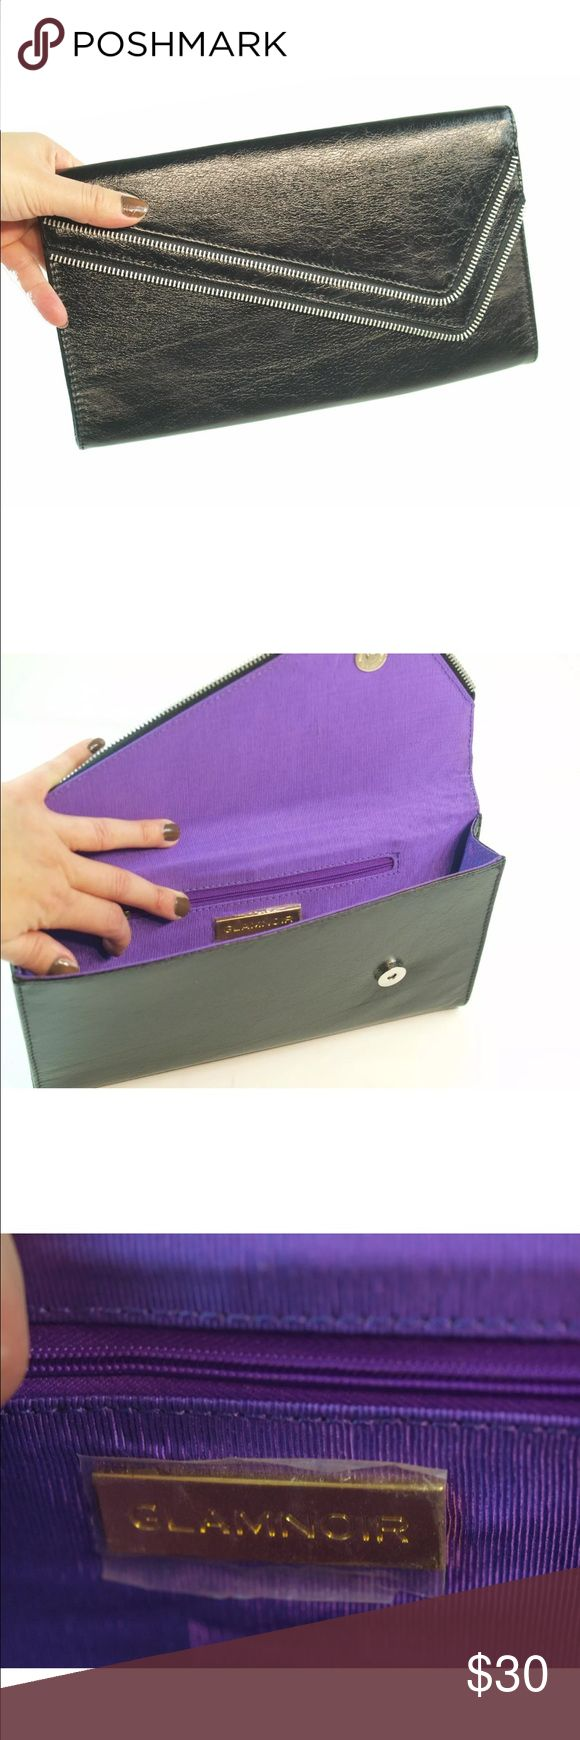 GLAM NOIR Zipper Clutch Up for sale Glamnoir Women's  Leather Zip Clutch Purse  Brand New never used Zipper clutch by Glamnoir, retails for $95  Super chic and perfect for night out  Zipper front style, purple linen inside Glam Noir Bags Clutches & Wristlets